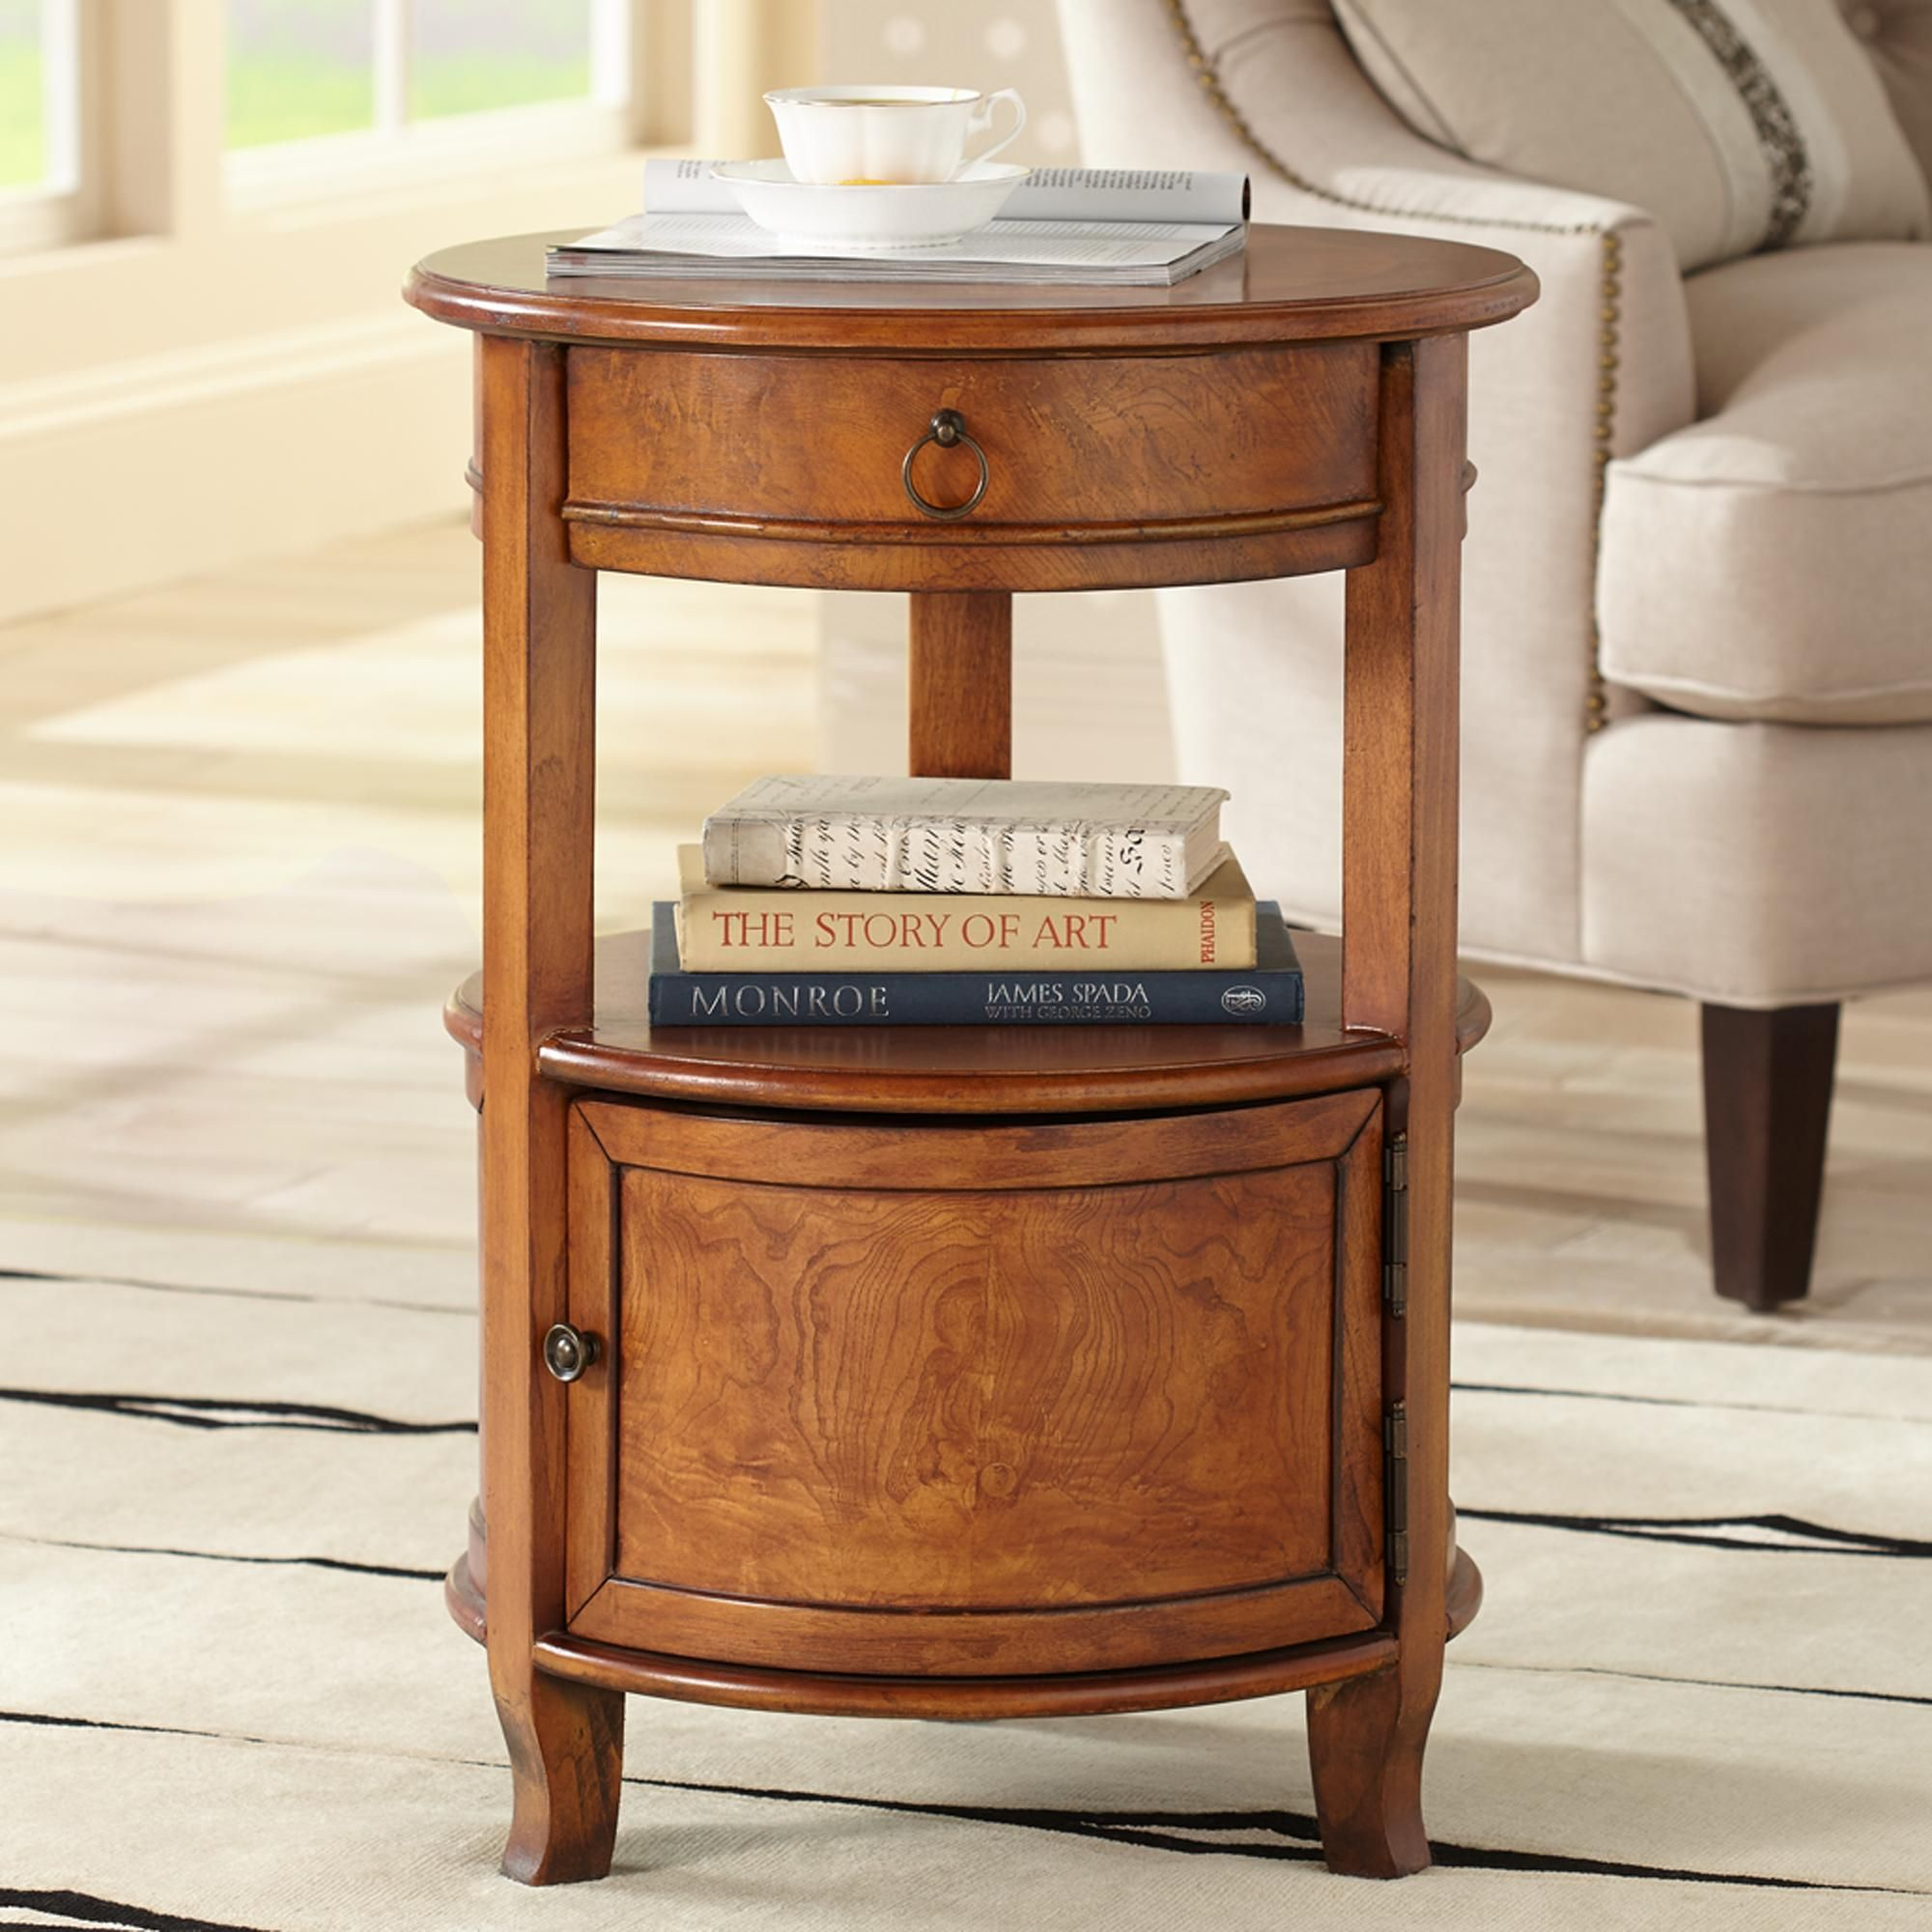 kendall cherry round accent table maison living room west elm coffee matching side tables home ornaments transparent kidney shaped rod iron end whole lighting fixtures ethan allen